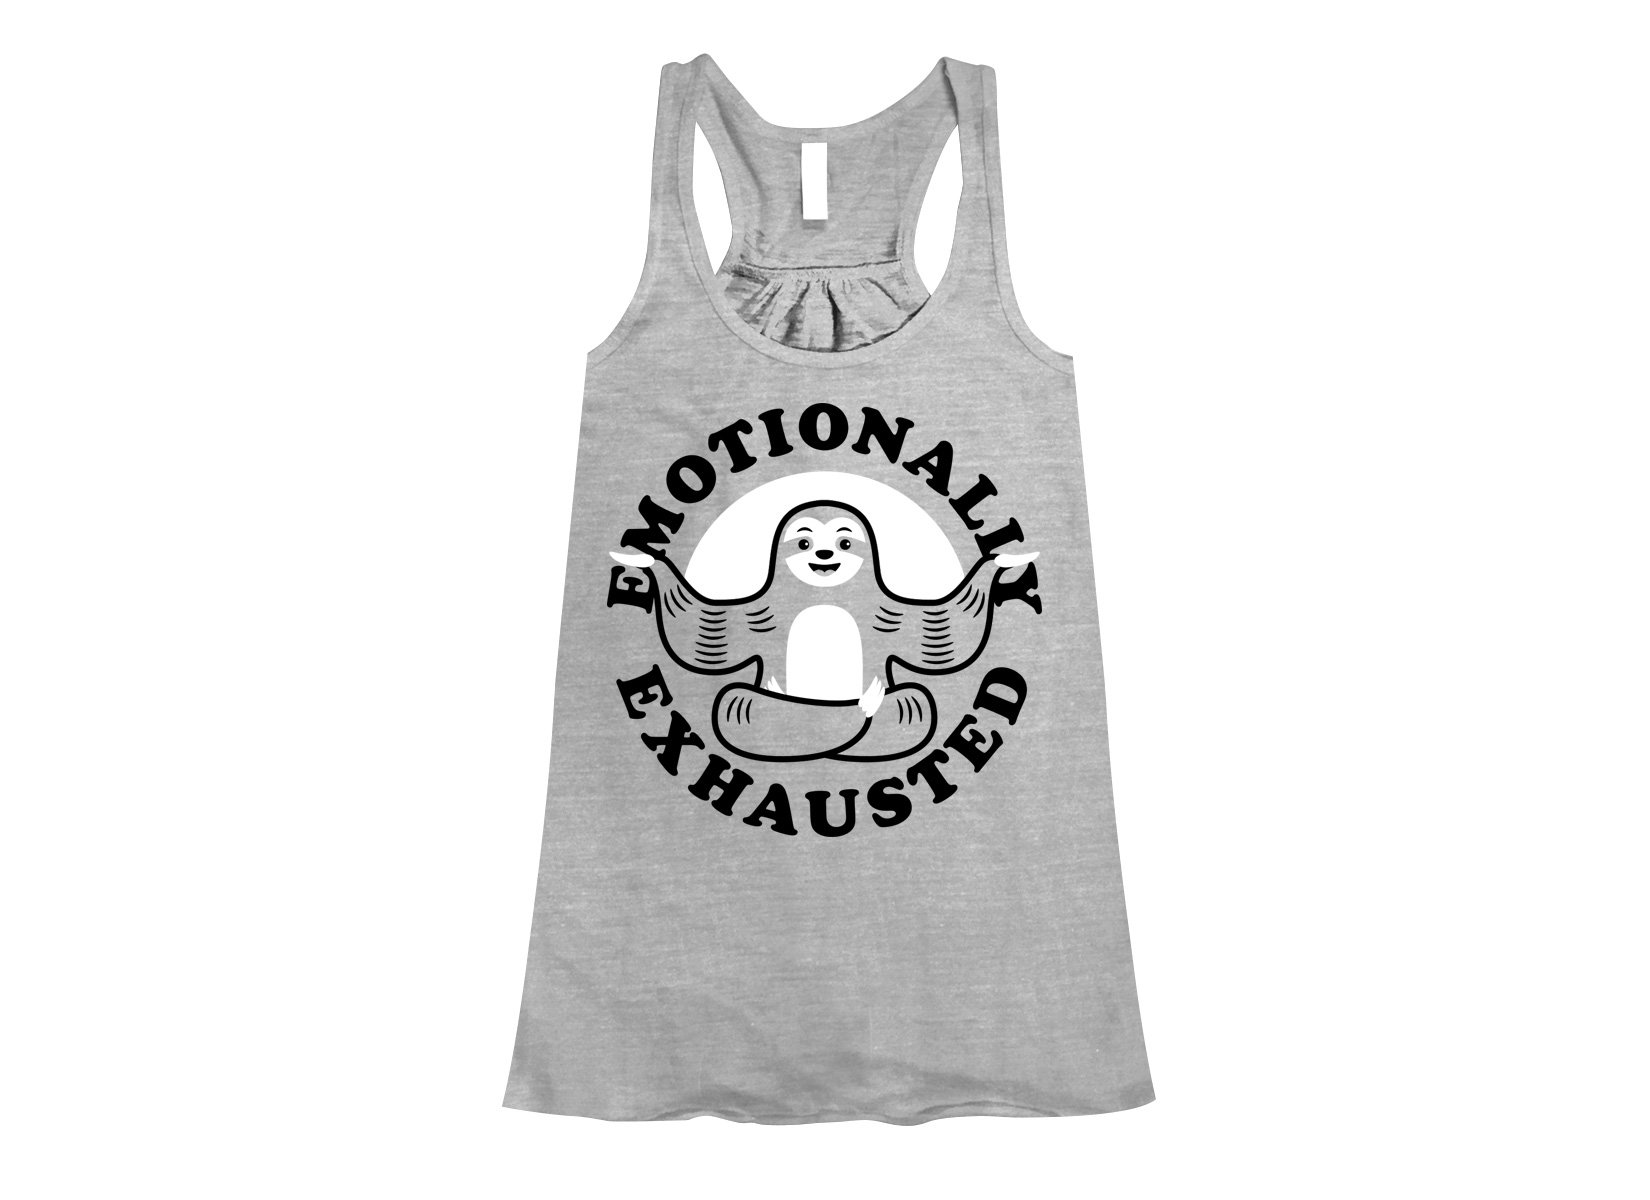 Emotionally Exhausted on Womens Tanks T-Shirt